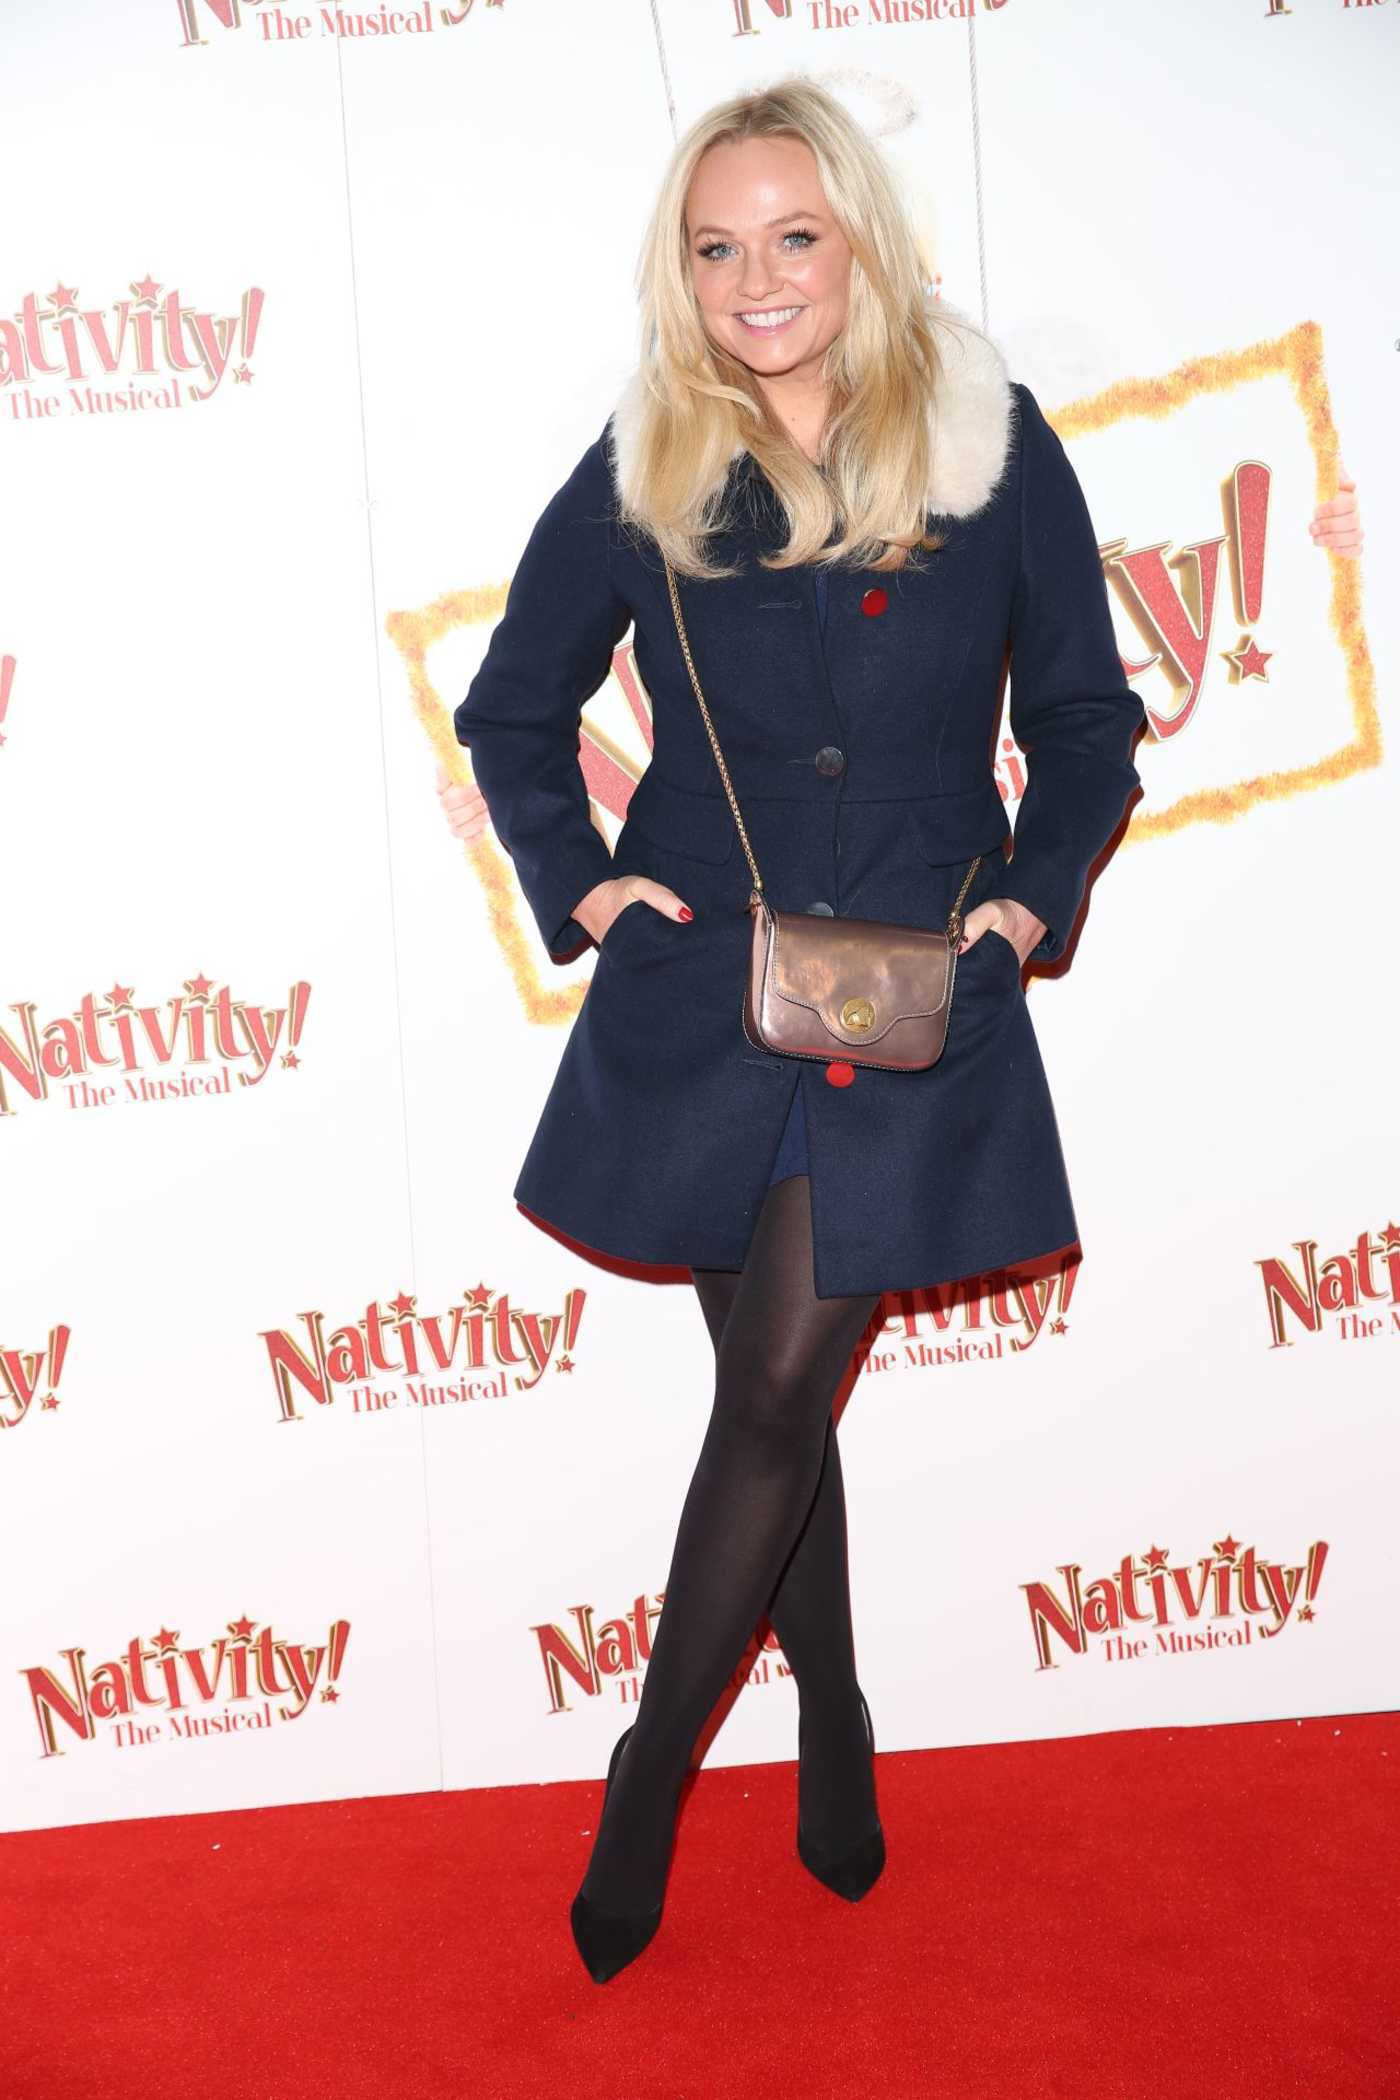 Emma Bunton at the Nativity Gala Night in London 12/14/2017